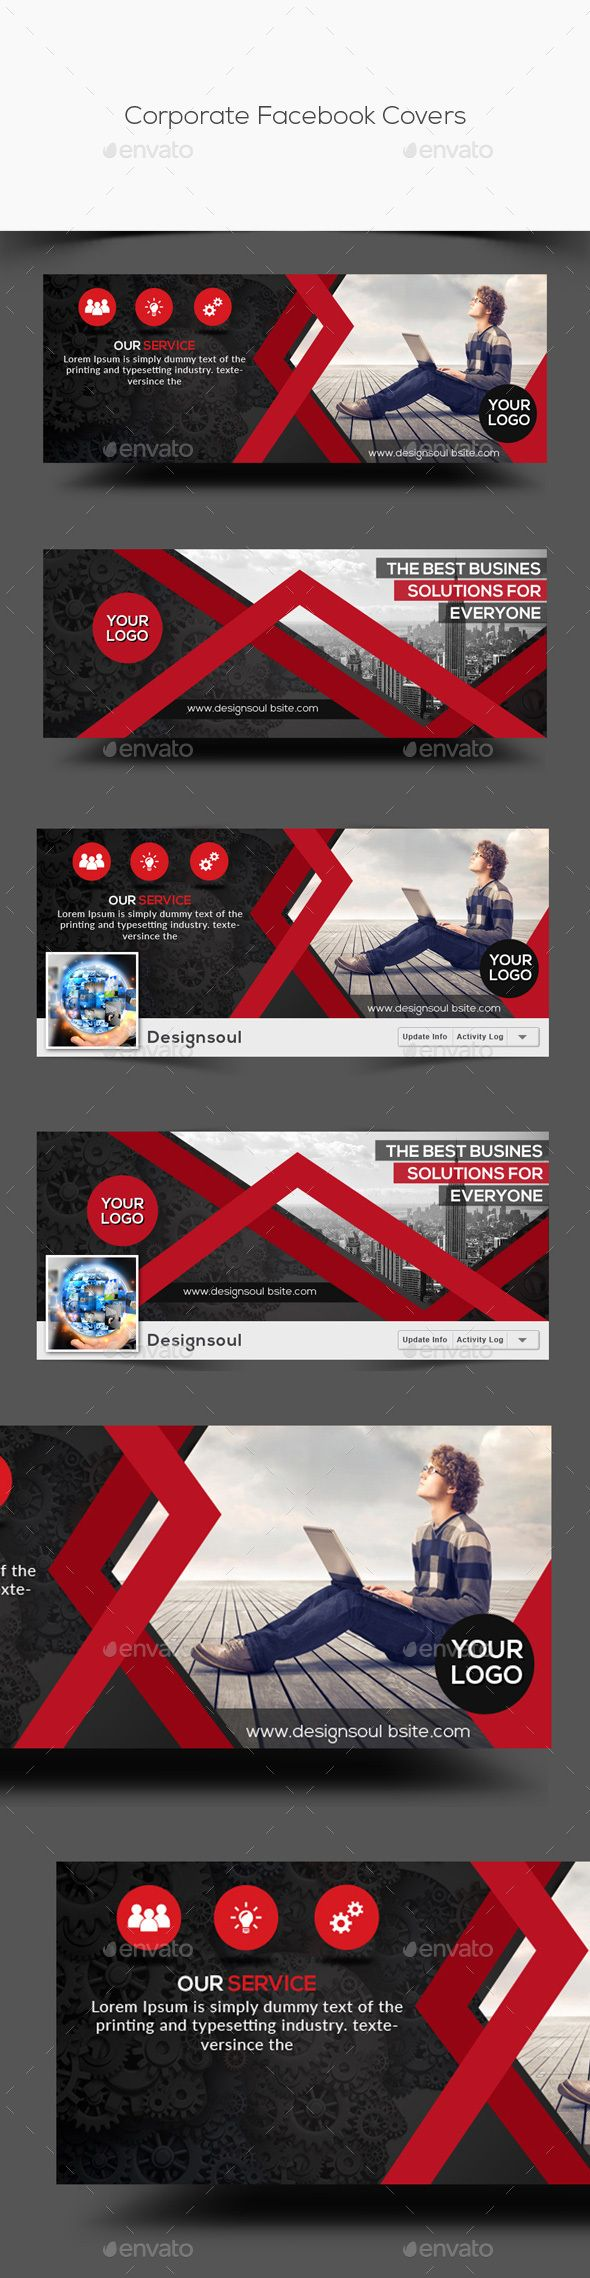 Corporate Facebook Covers Template PSD. Download here: http://graphicriver.net/item/corporate-facebook-covers/14965795?ref=ksioks